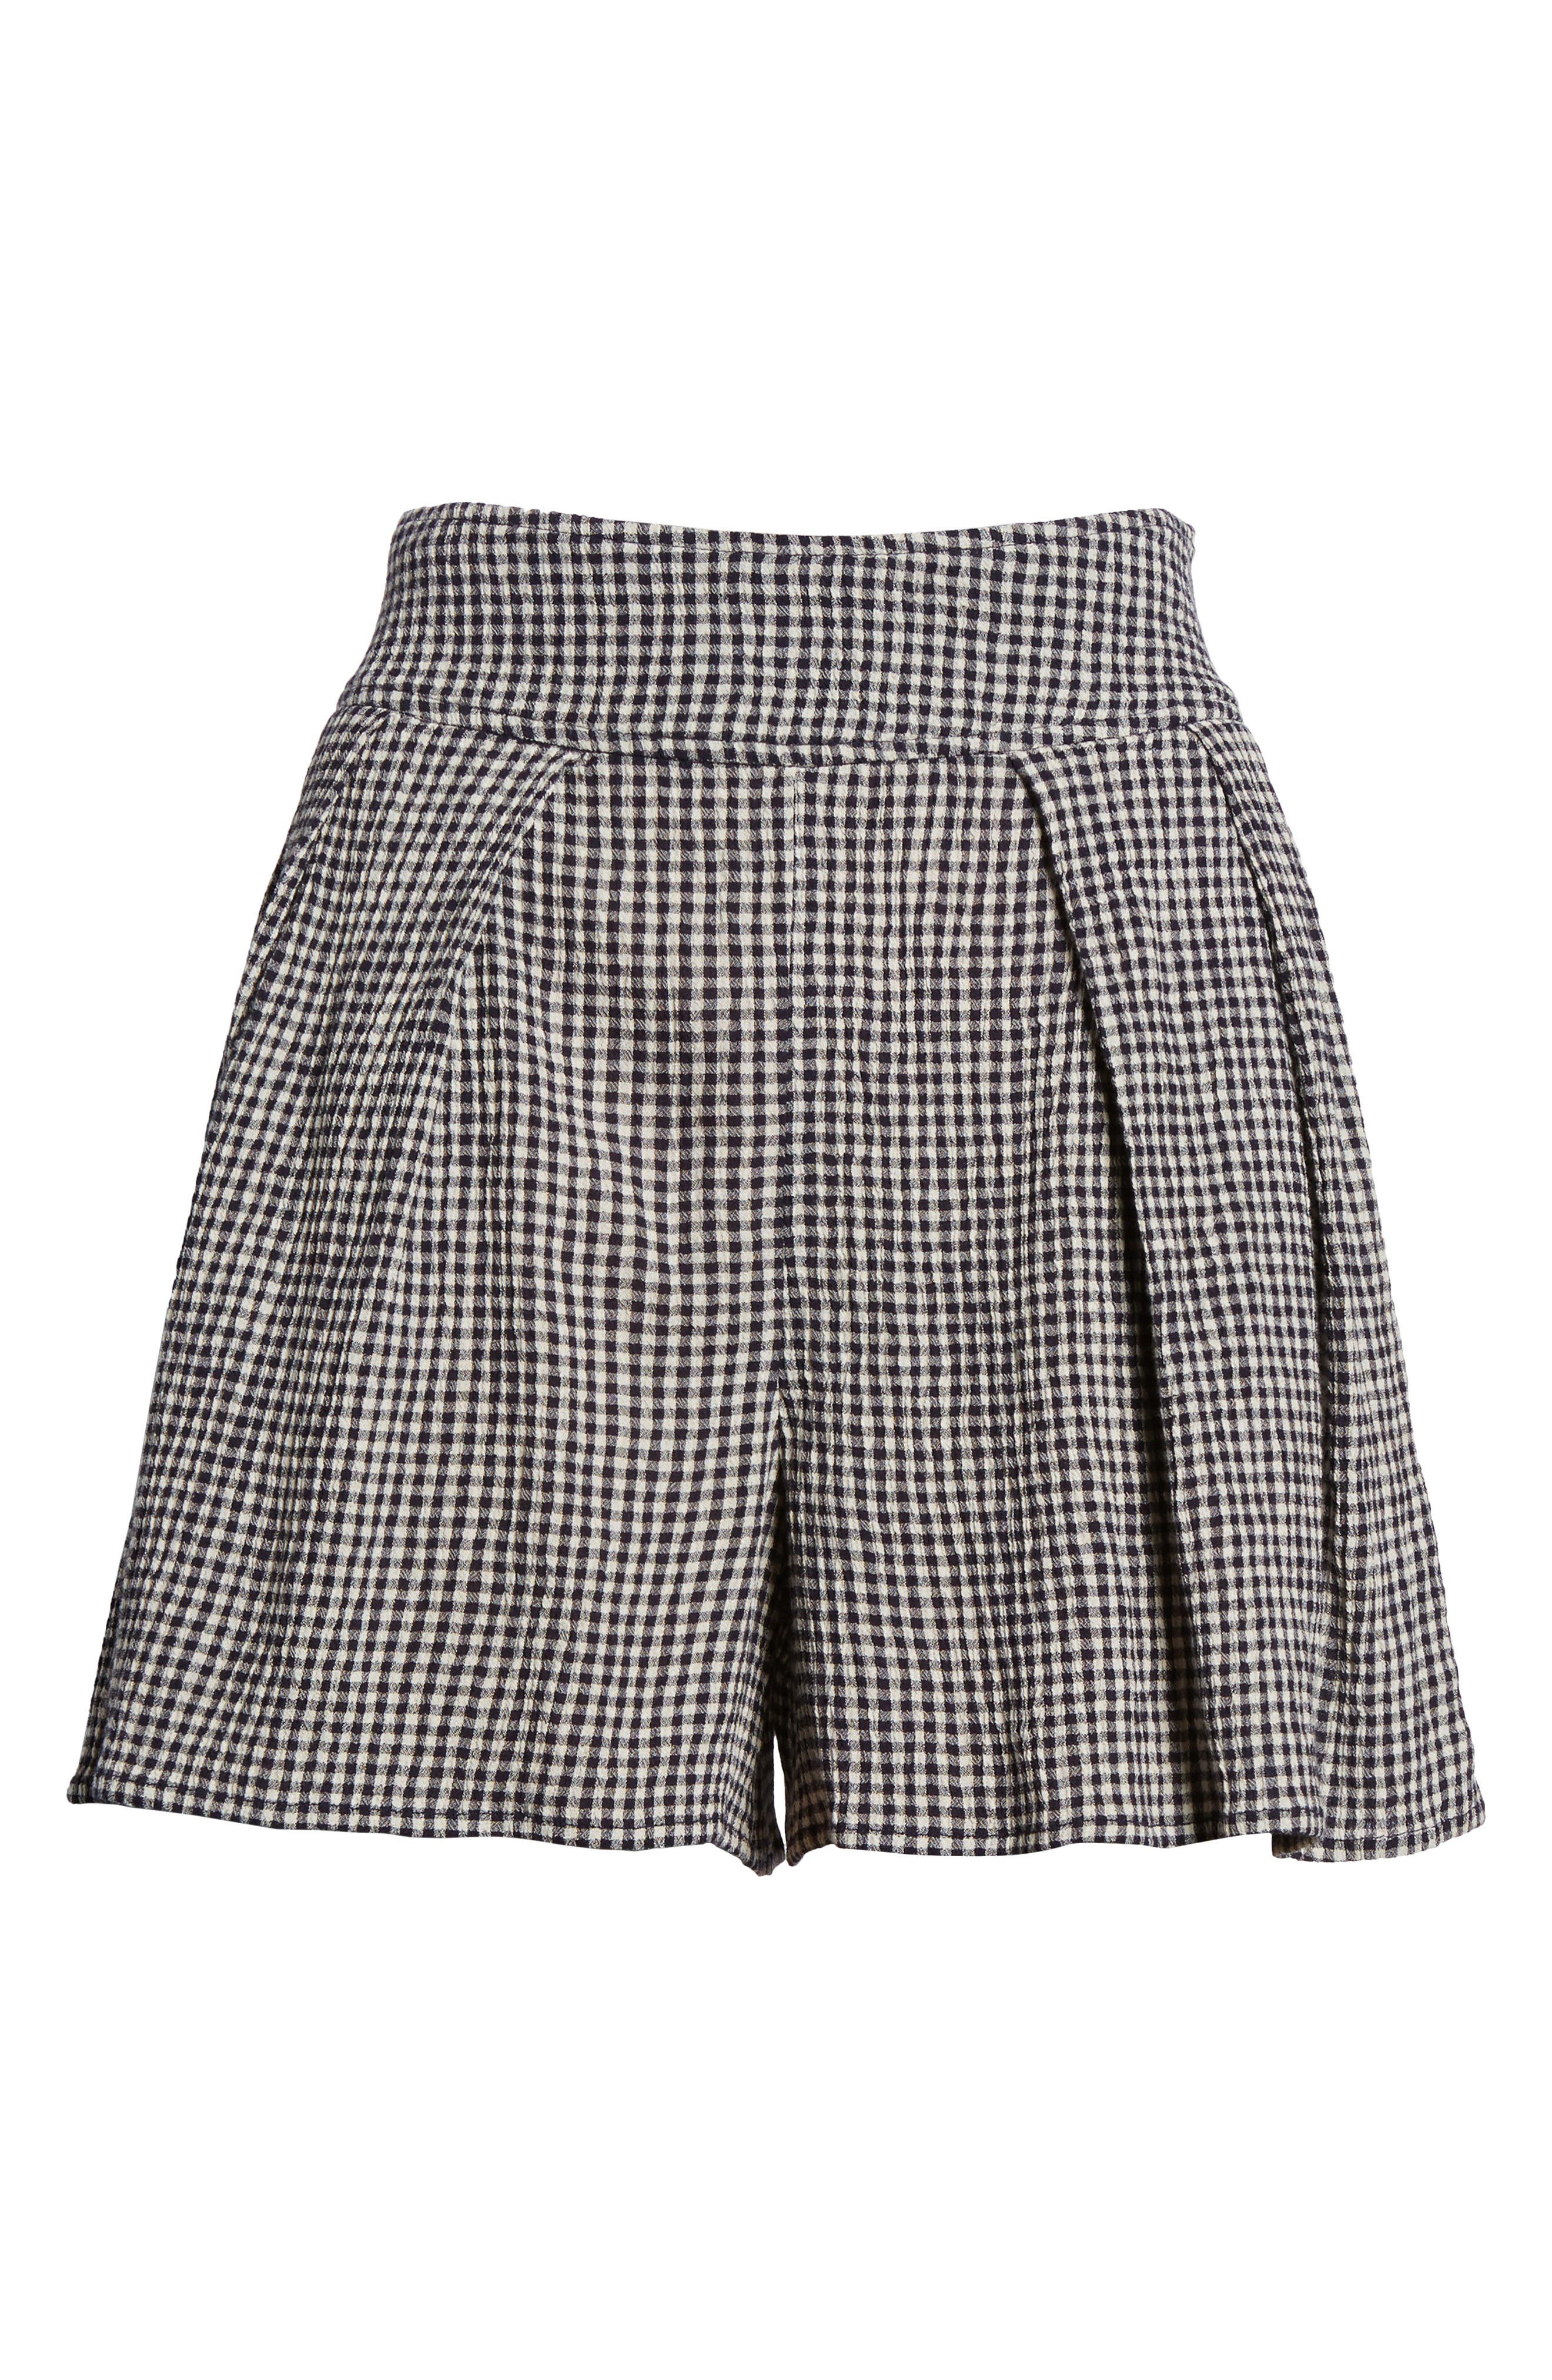 Pleated Gingham Shorts,                             Alternate thumbnail 6, color,                             Black Julie Gingham